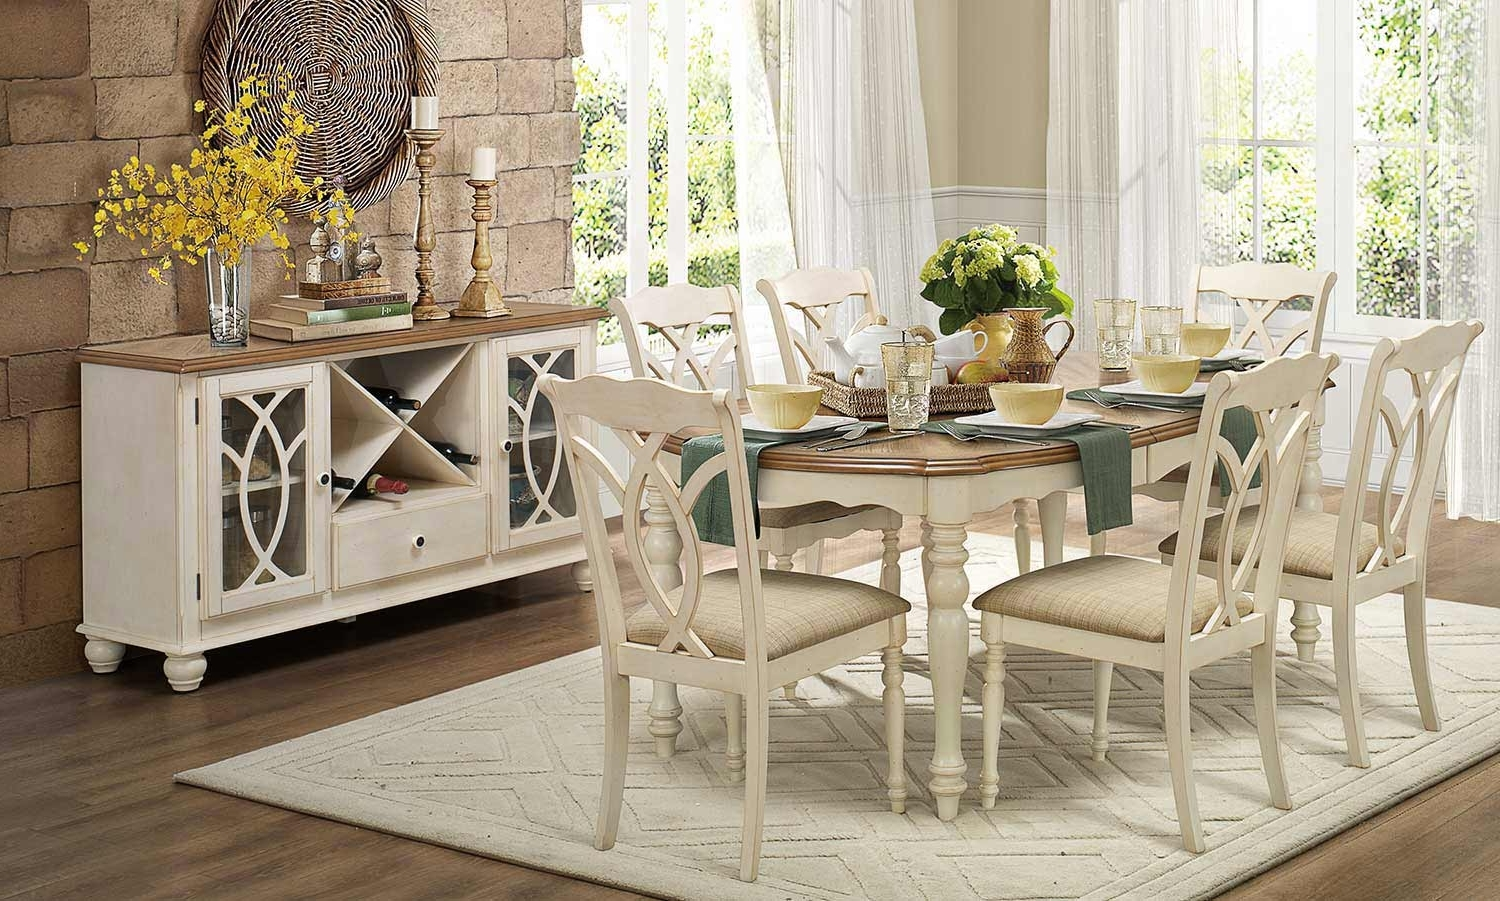 Homelegance Azalea 7Pc Antique White Dining Table Set Dallas Tx Inside Widely Used White Dining Sets (View 11 of 25)